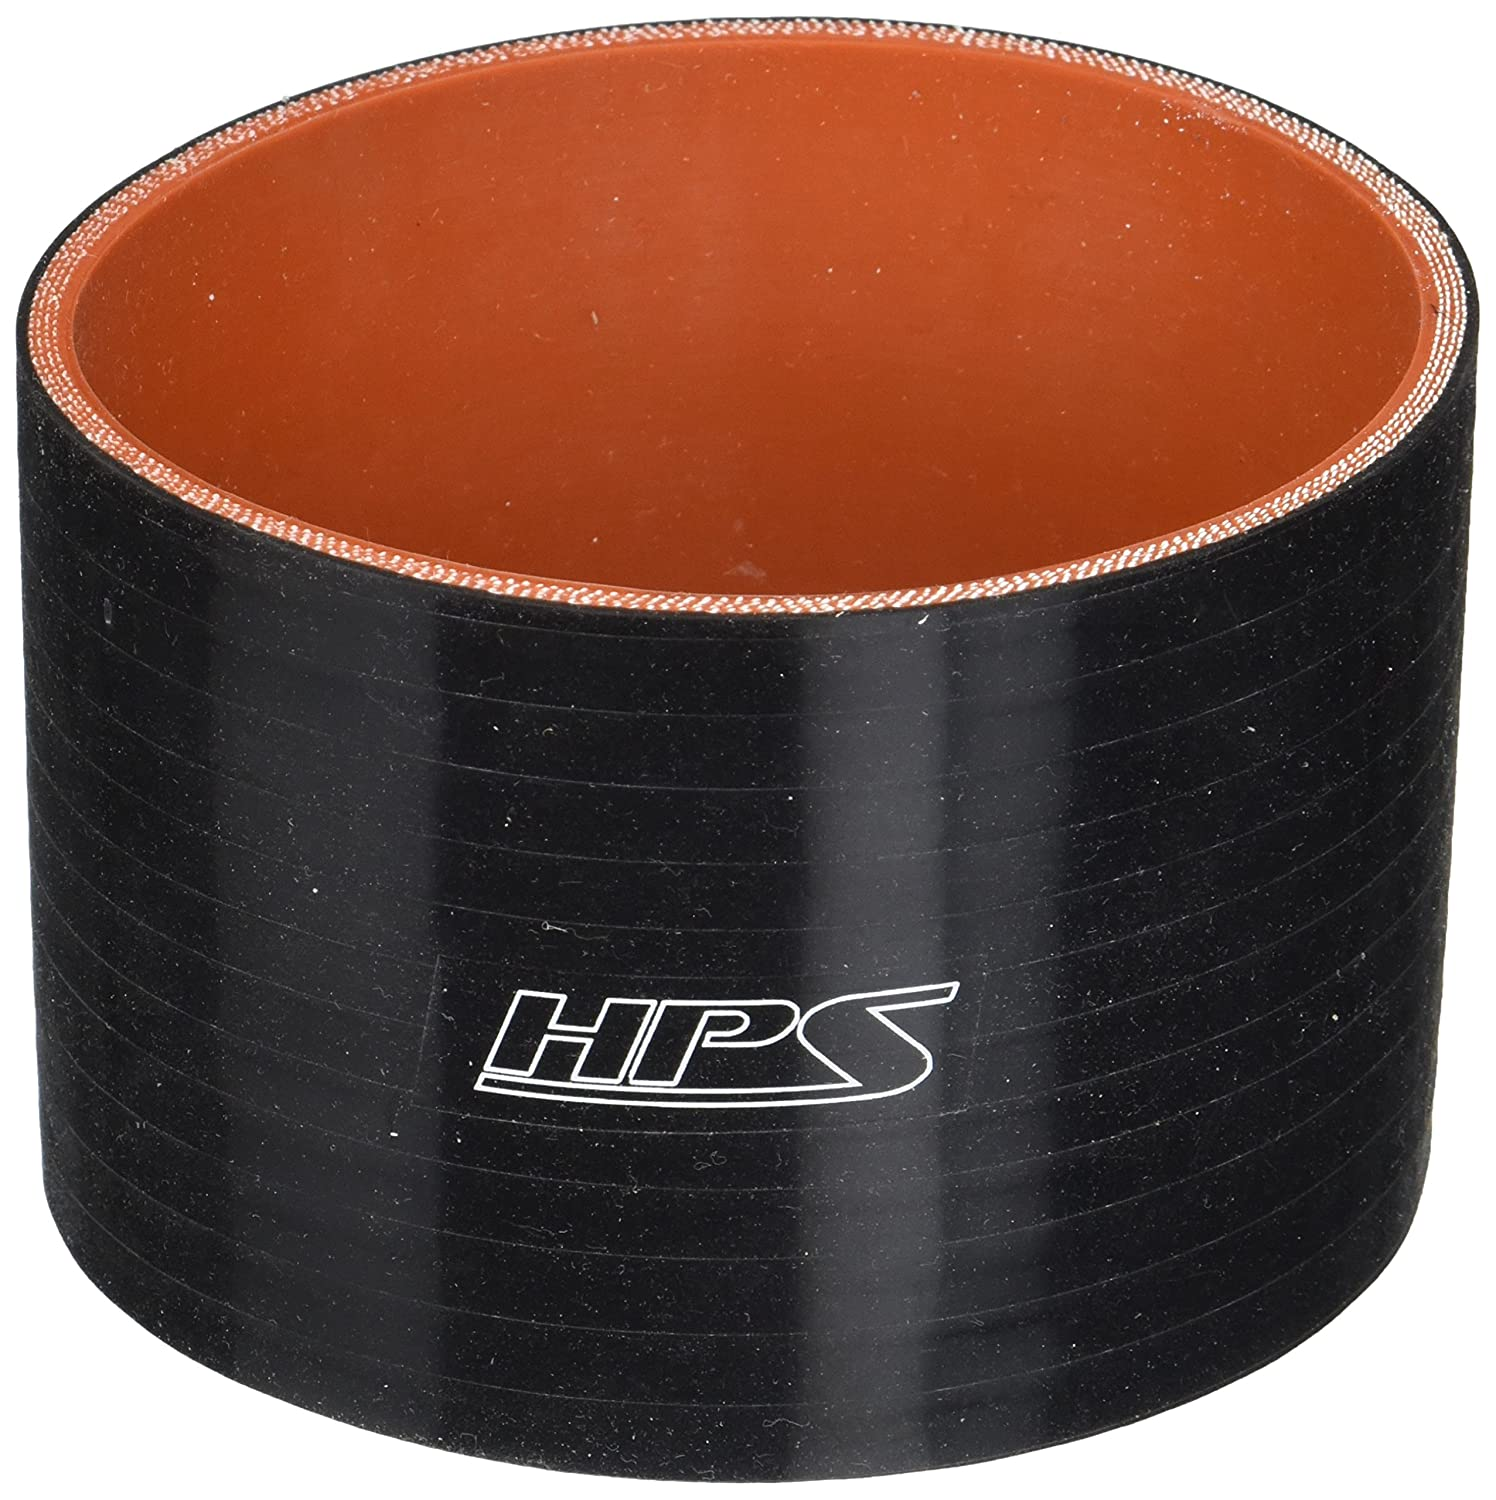 "HPS HTSC-425-BLK Silicone High Temperature 4-Ply Reinforced Straight Coupler Hose, 65 PSI Maximum Pressure, 3"" Length, 4.25"" ID, Black 91IuORjGj8L"